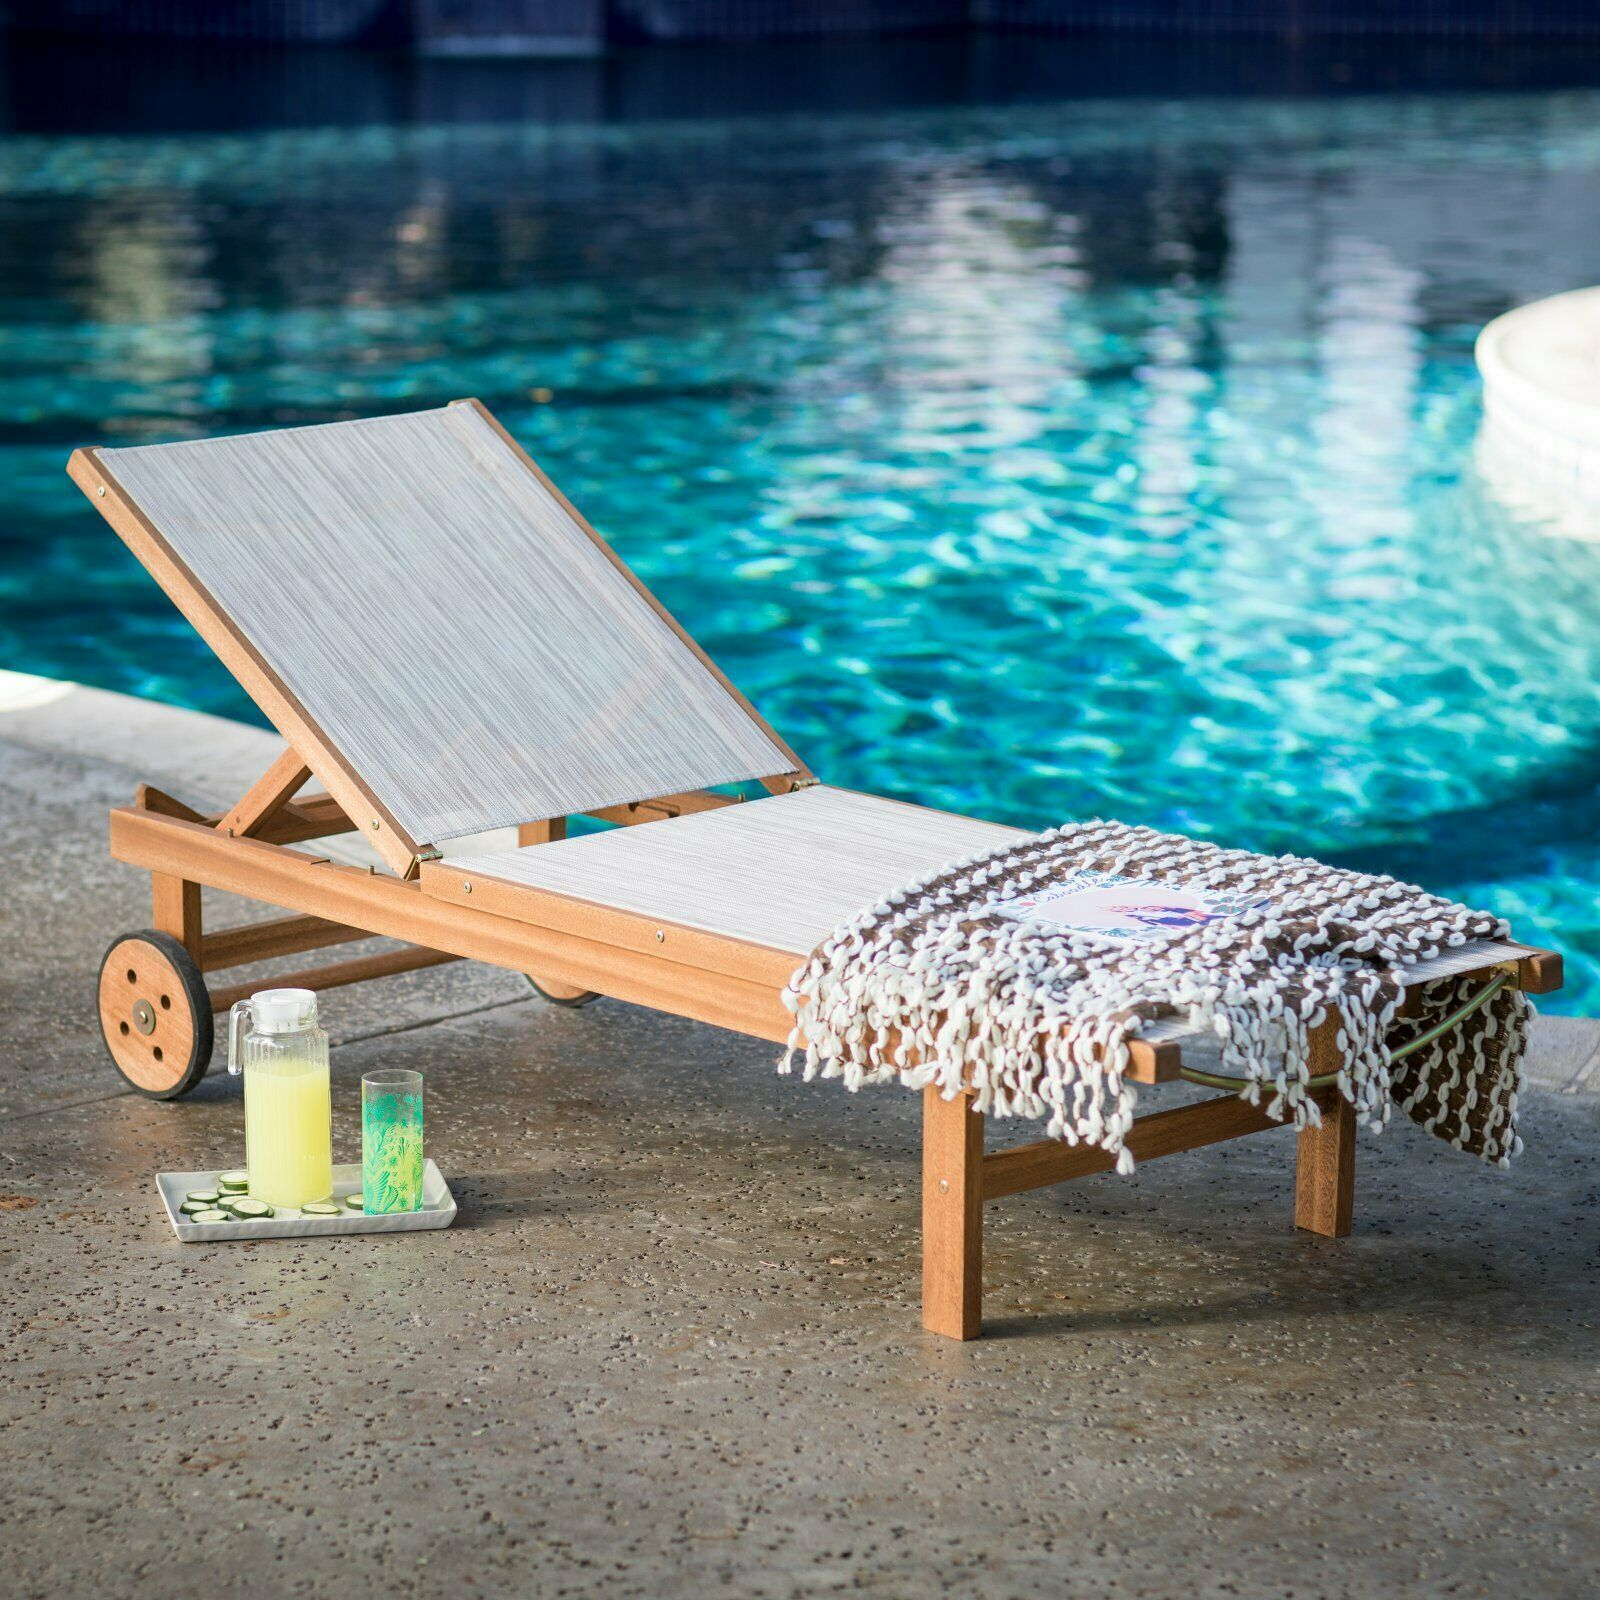 Natural Finish Eucalyptus Wood Sling Chaise Lounge Outdoor Pool Lounger w/Wheels